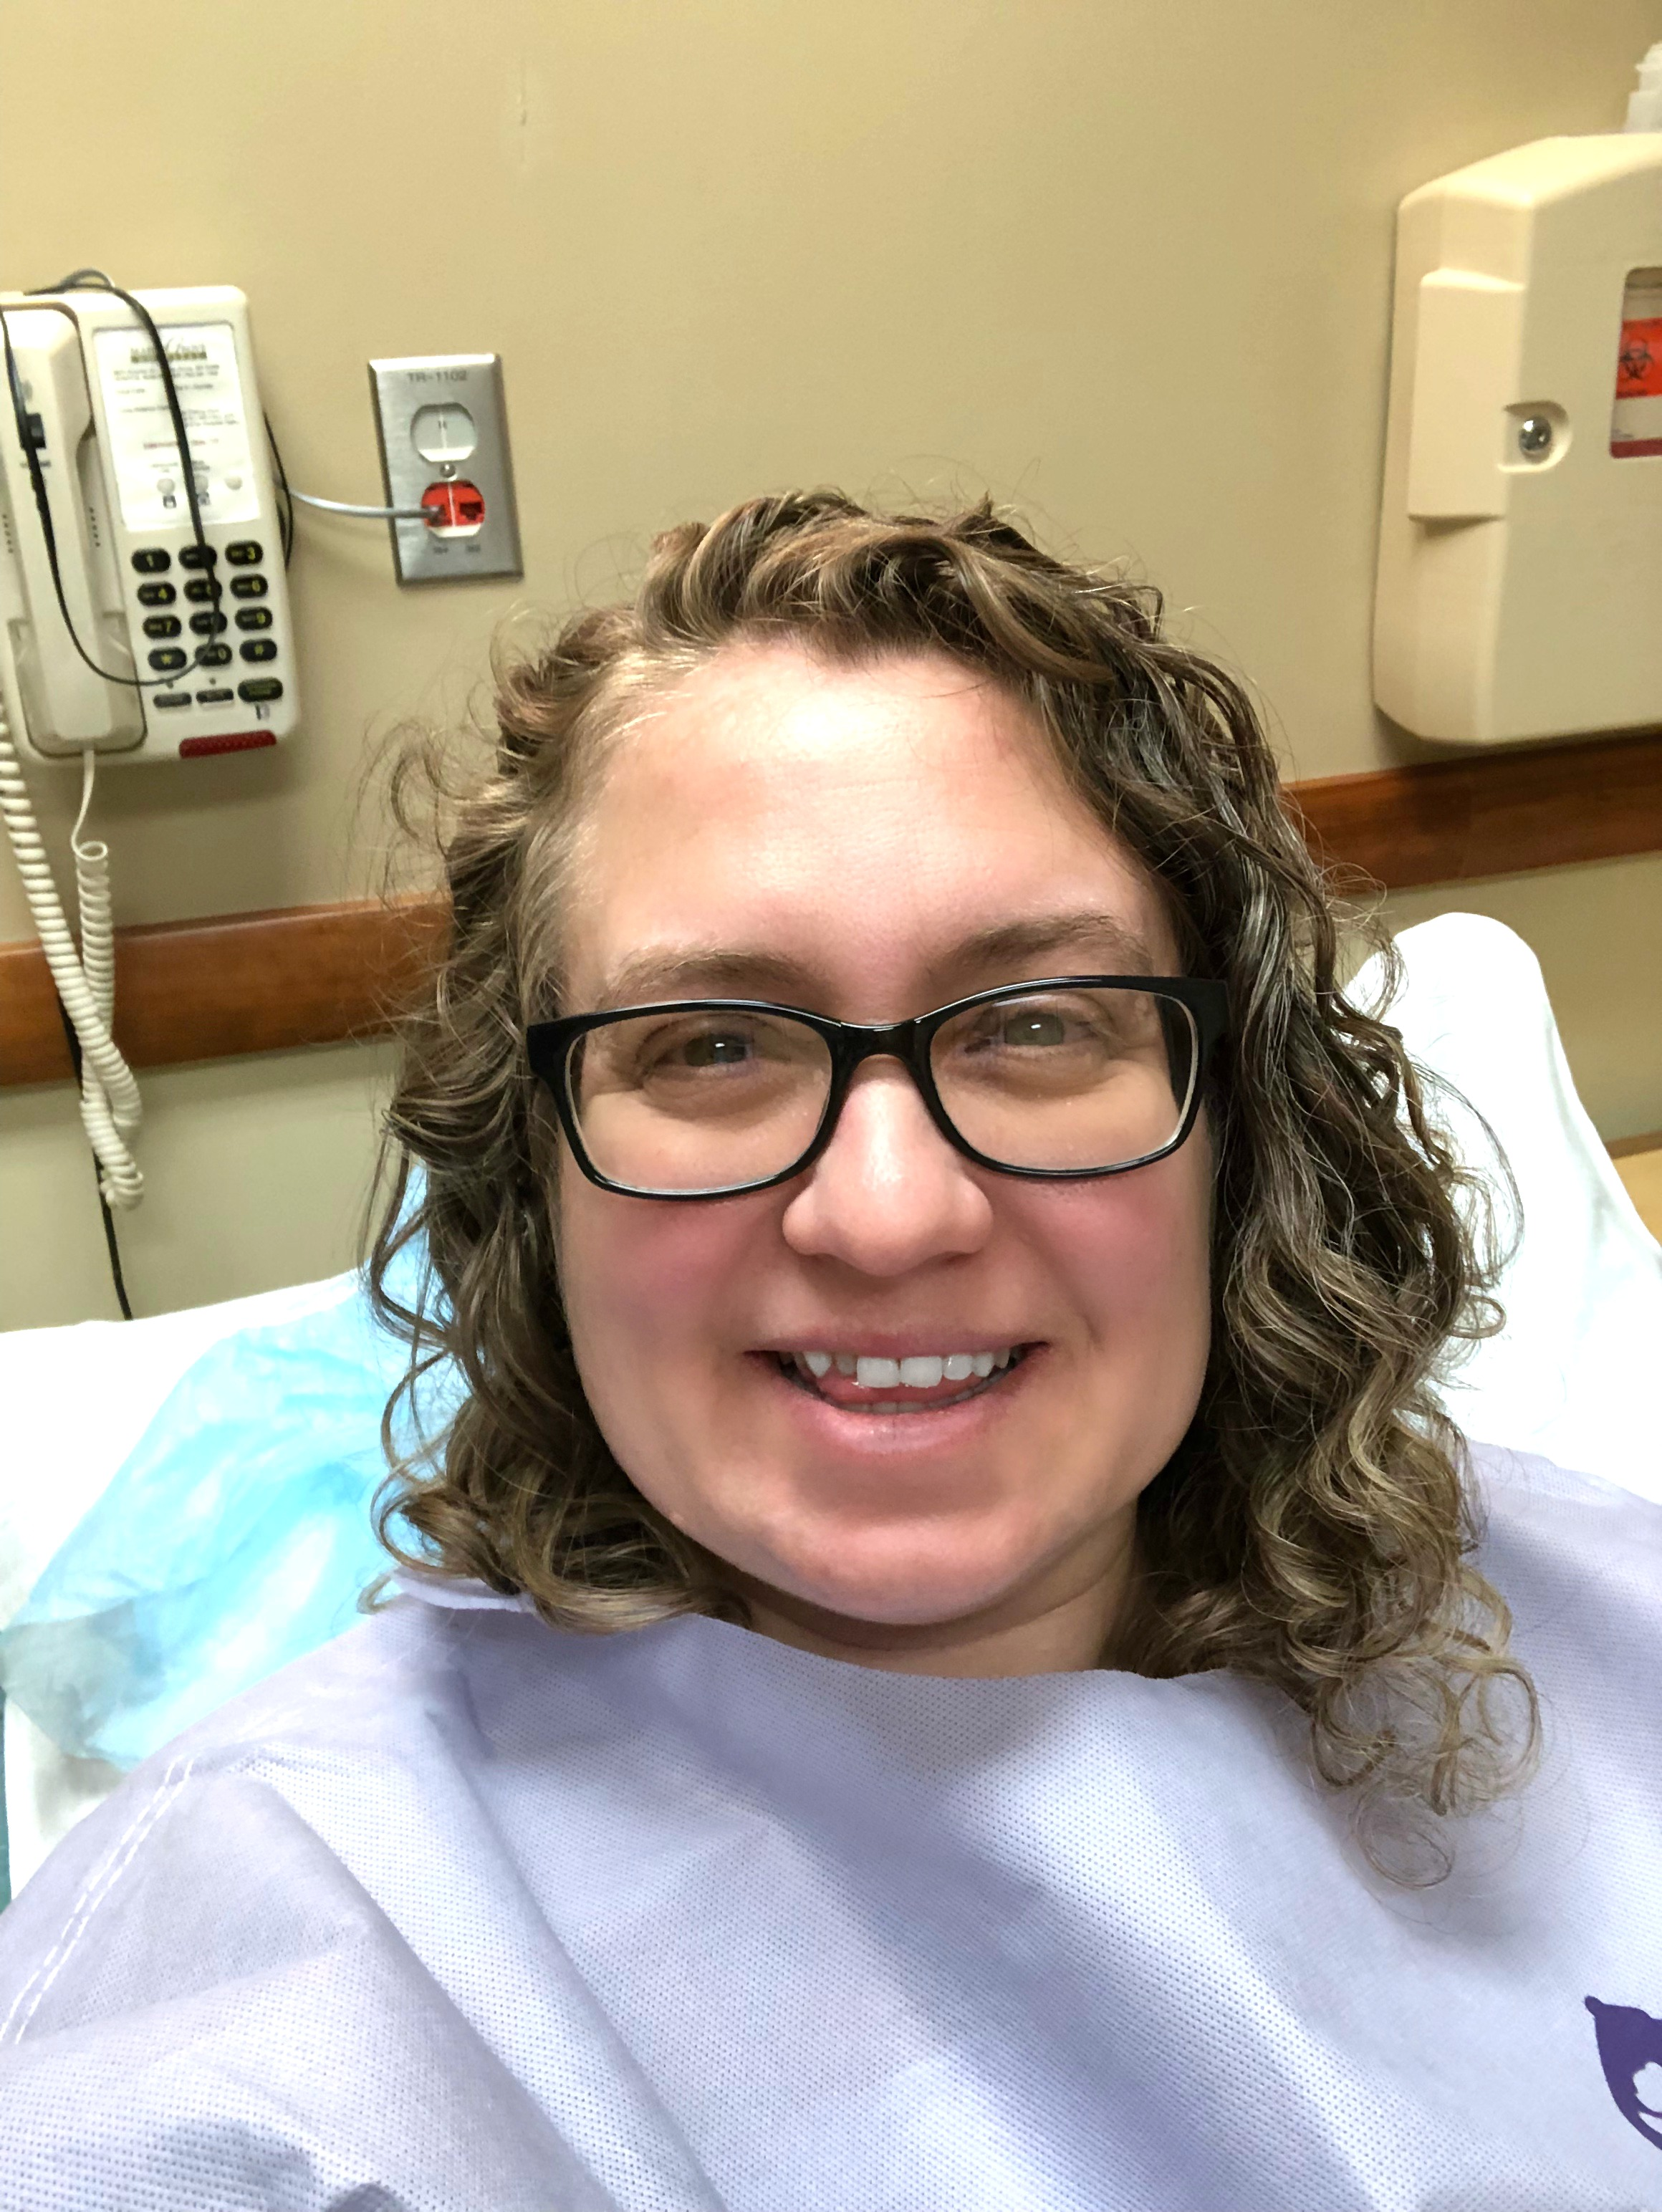 Deep Excision and Hysterectomy Surgery Day -  Surgery Day was here and I was so nervous. The staff was great and I'm now resting and healing.